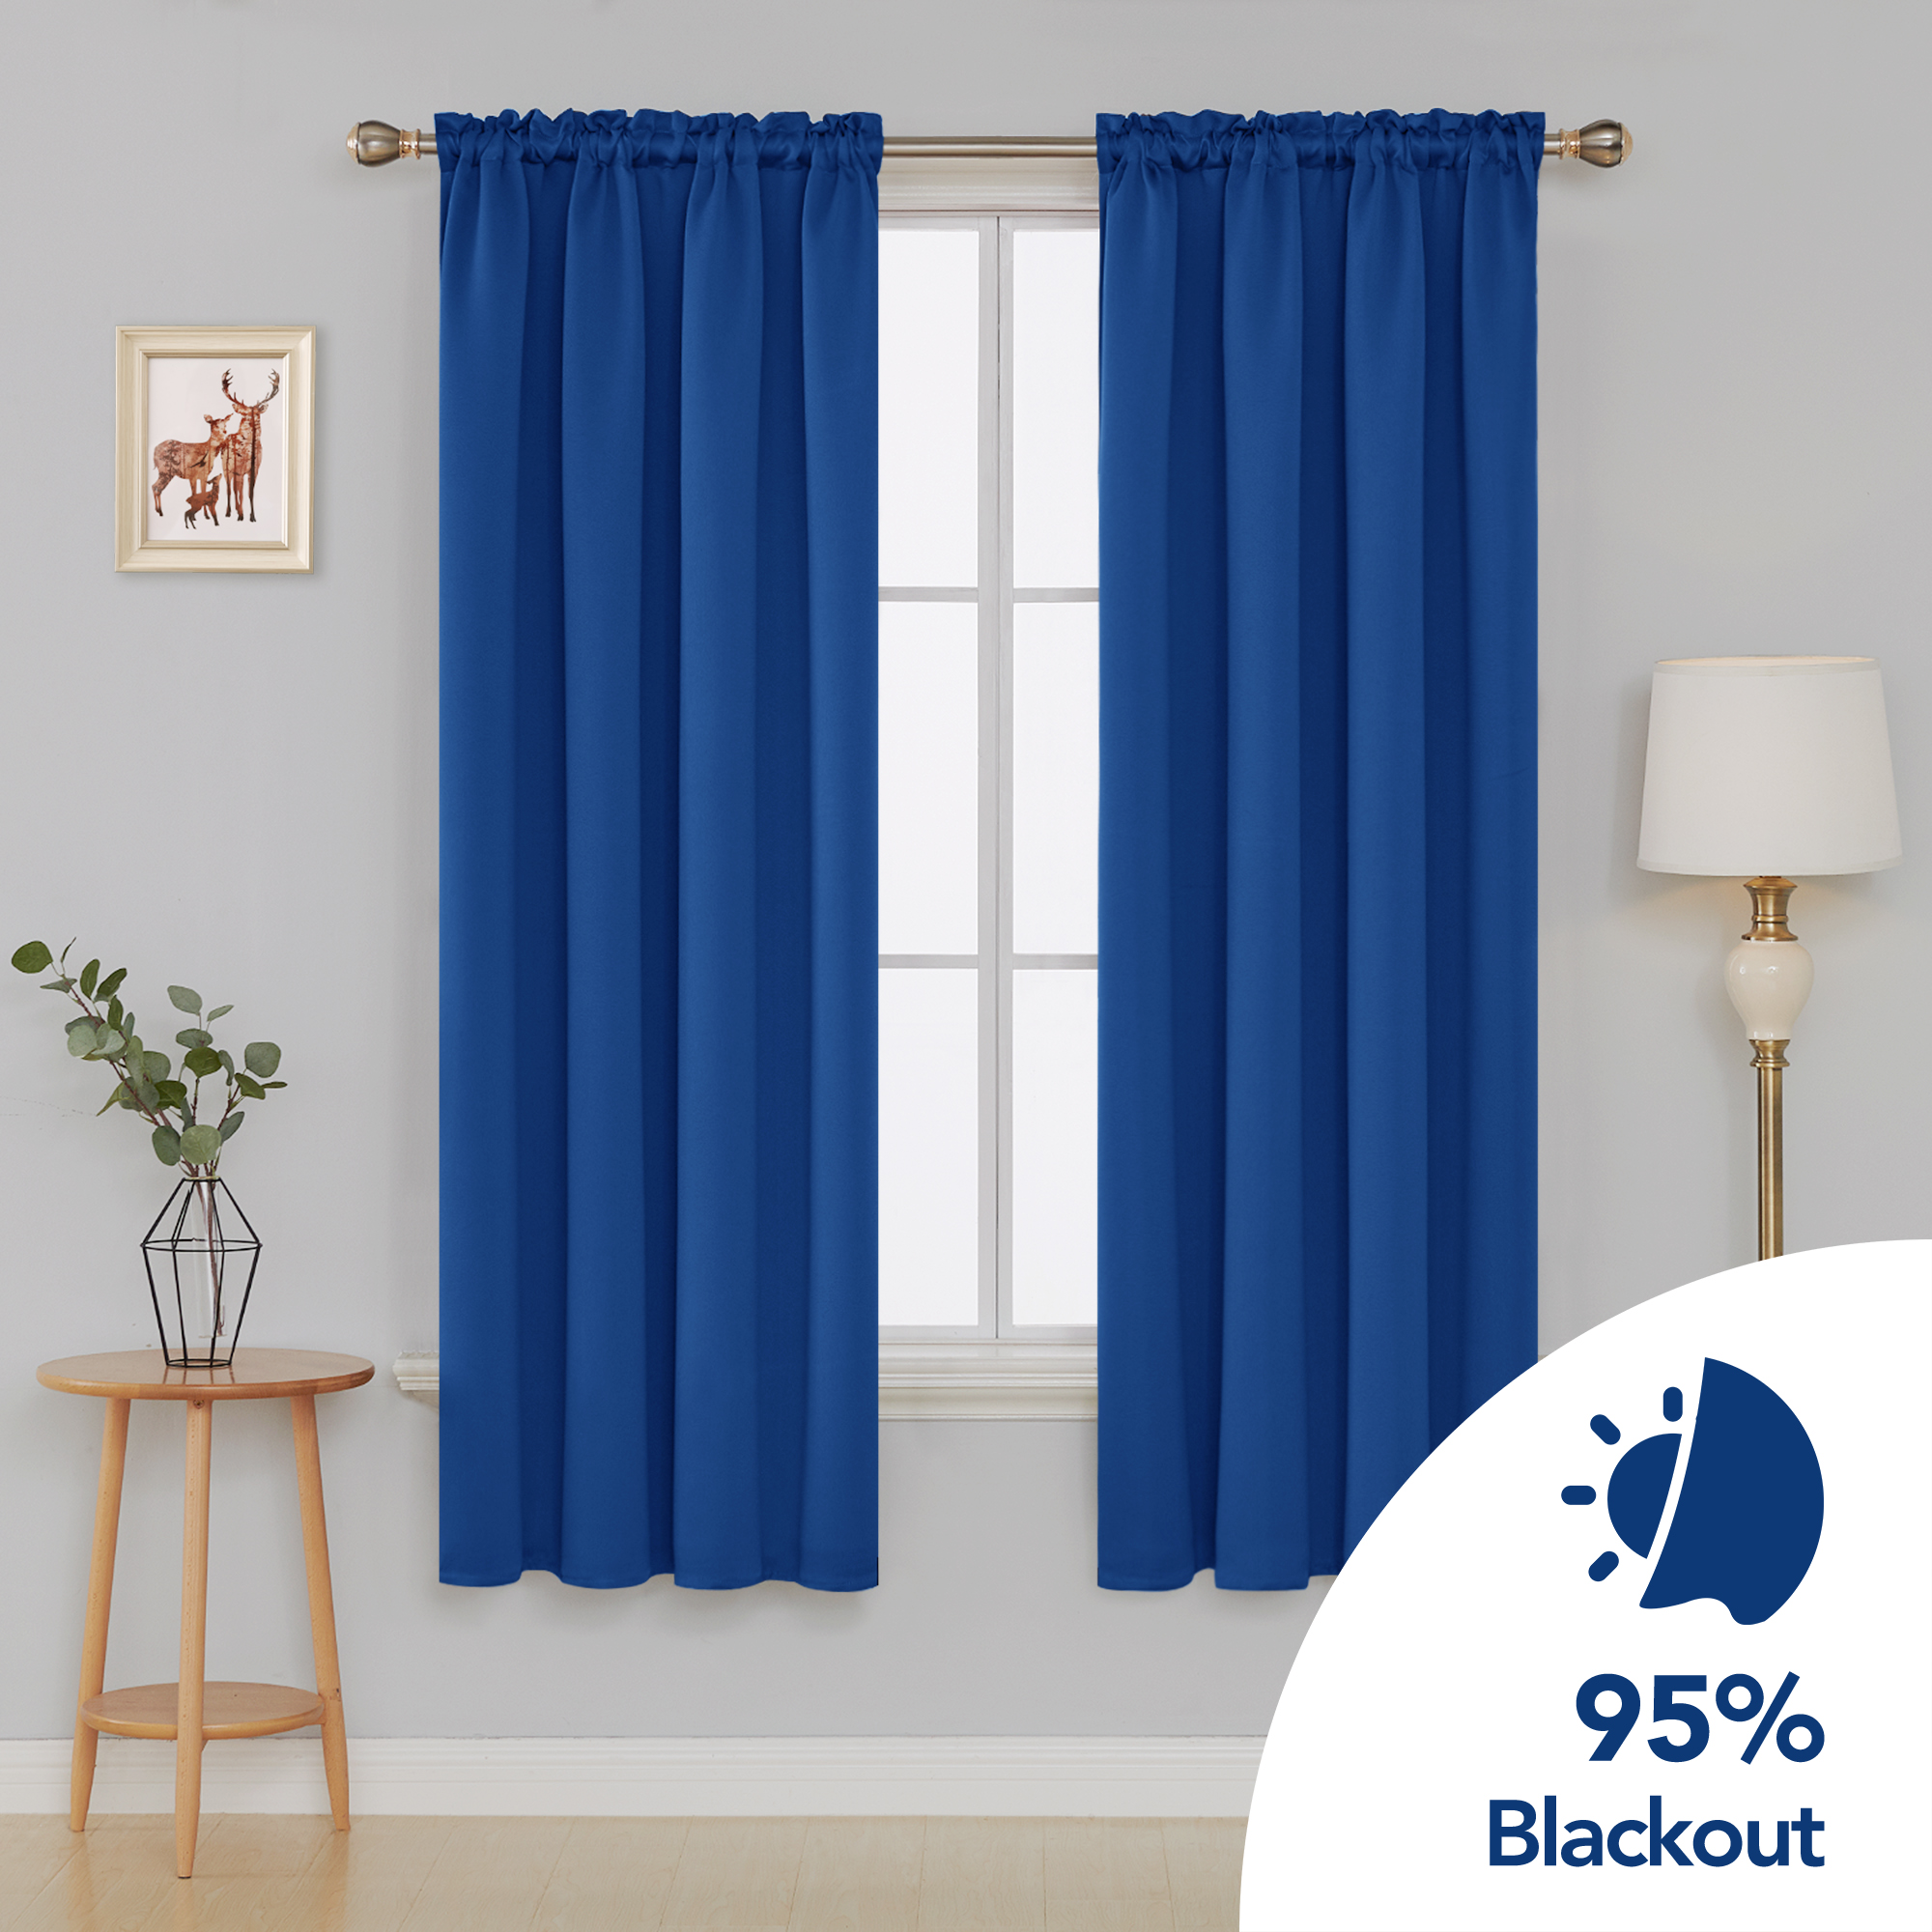 deconovo royal blue blackout curtains rod pocket curtain panels room darkening curtains for bedroom 52 w x 72 l inch 2 panels